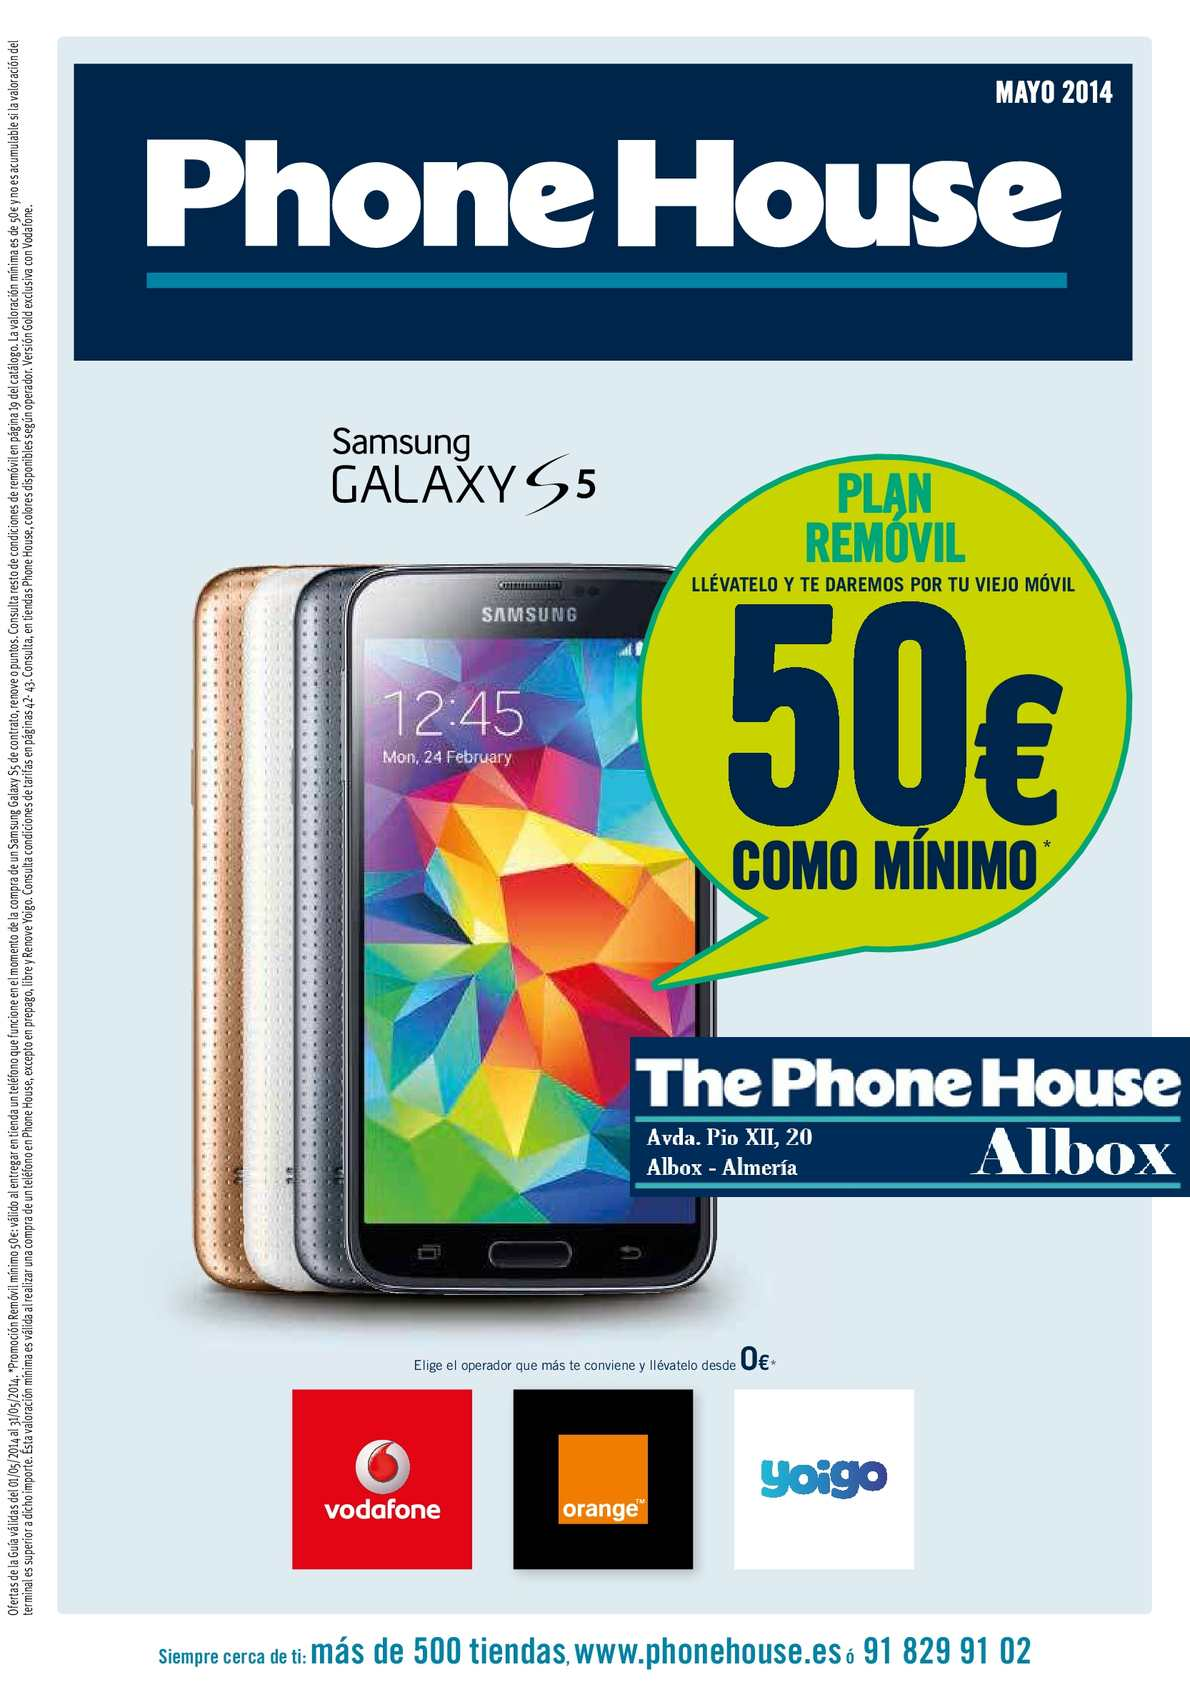 Phone House Moviles Libres Catalogo Calaméo Mayo The Phone House Albox